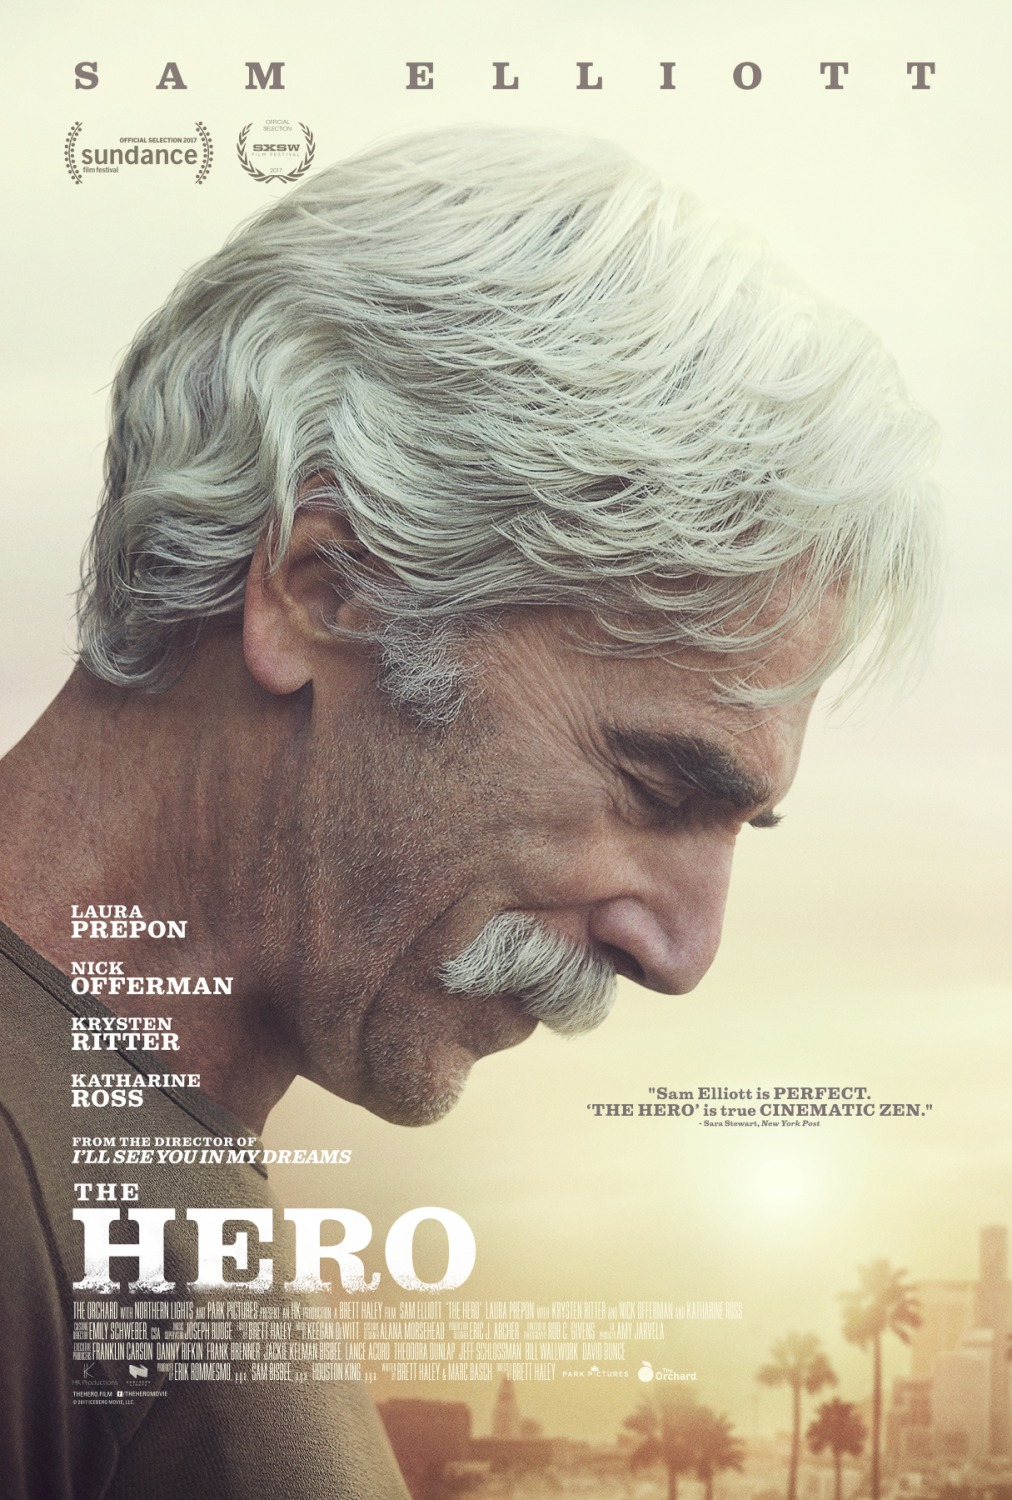 Image result for the hero sam elliott movie poster